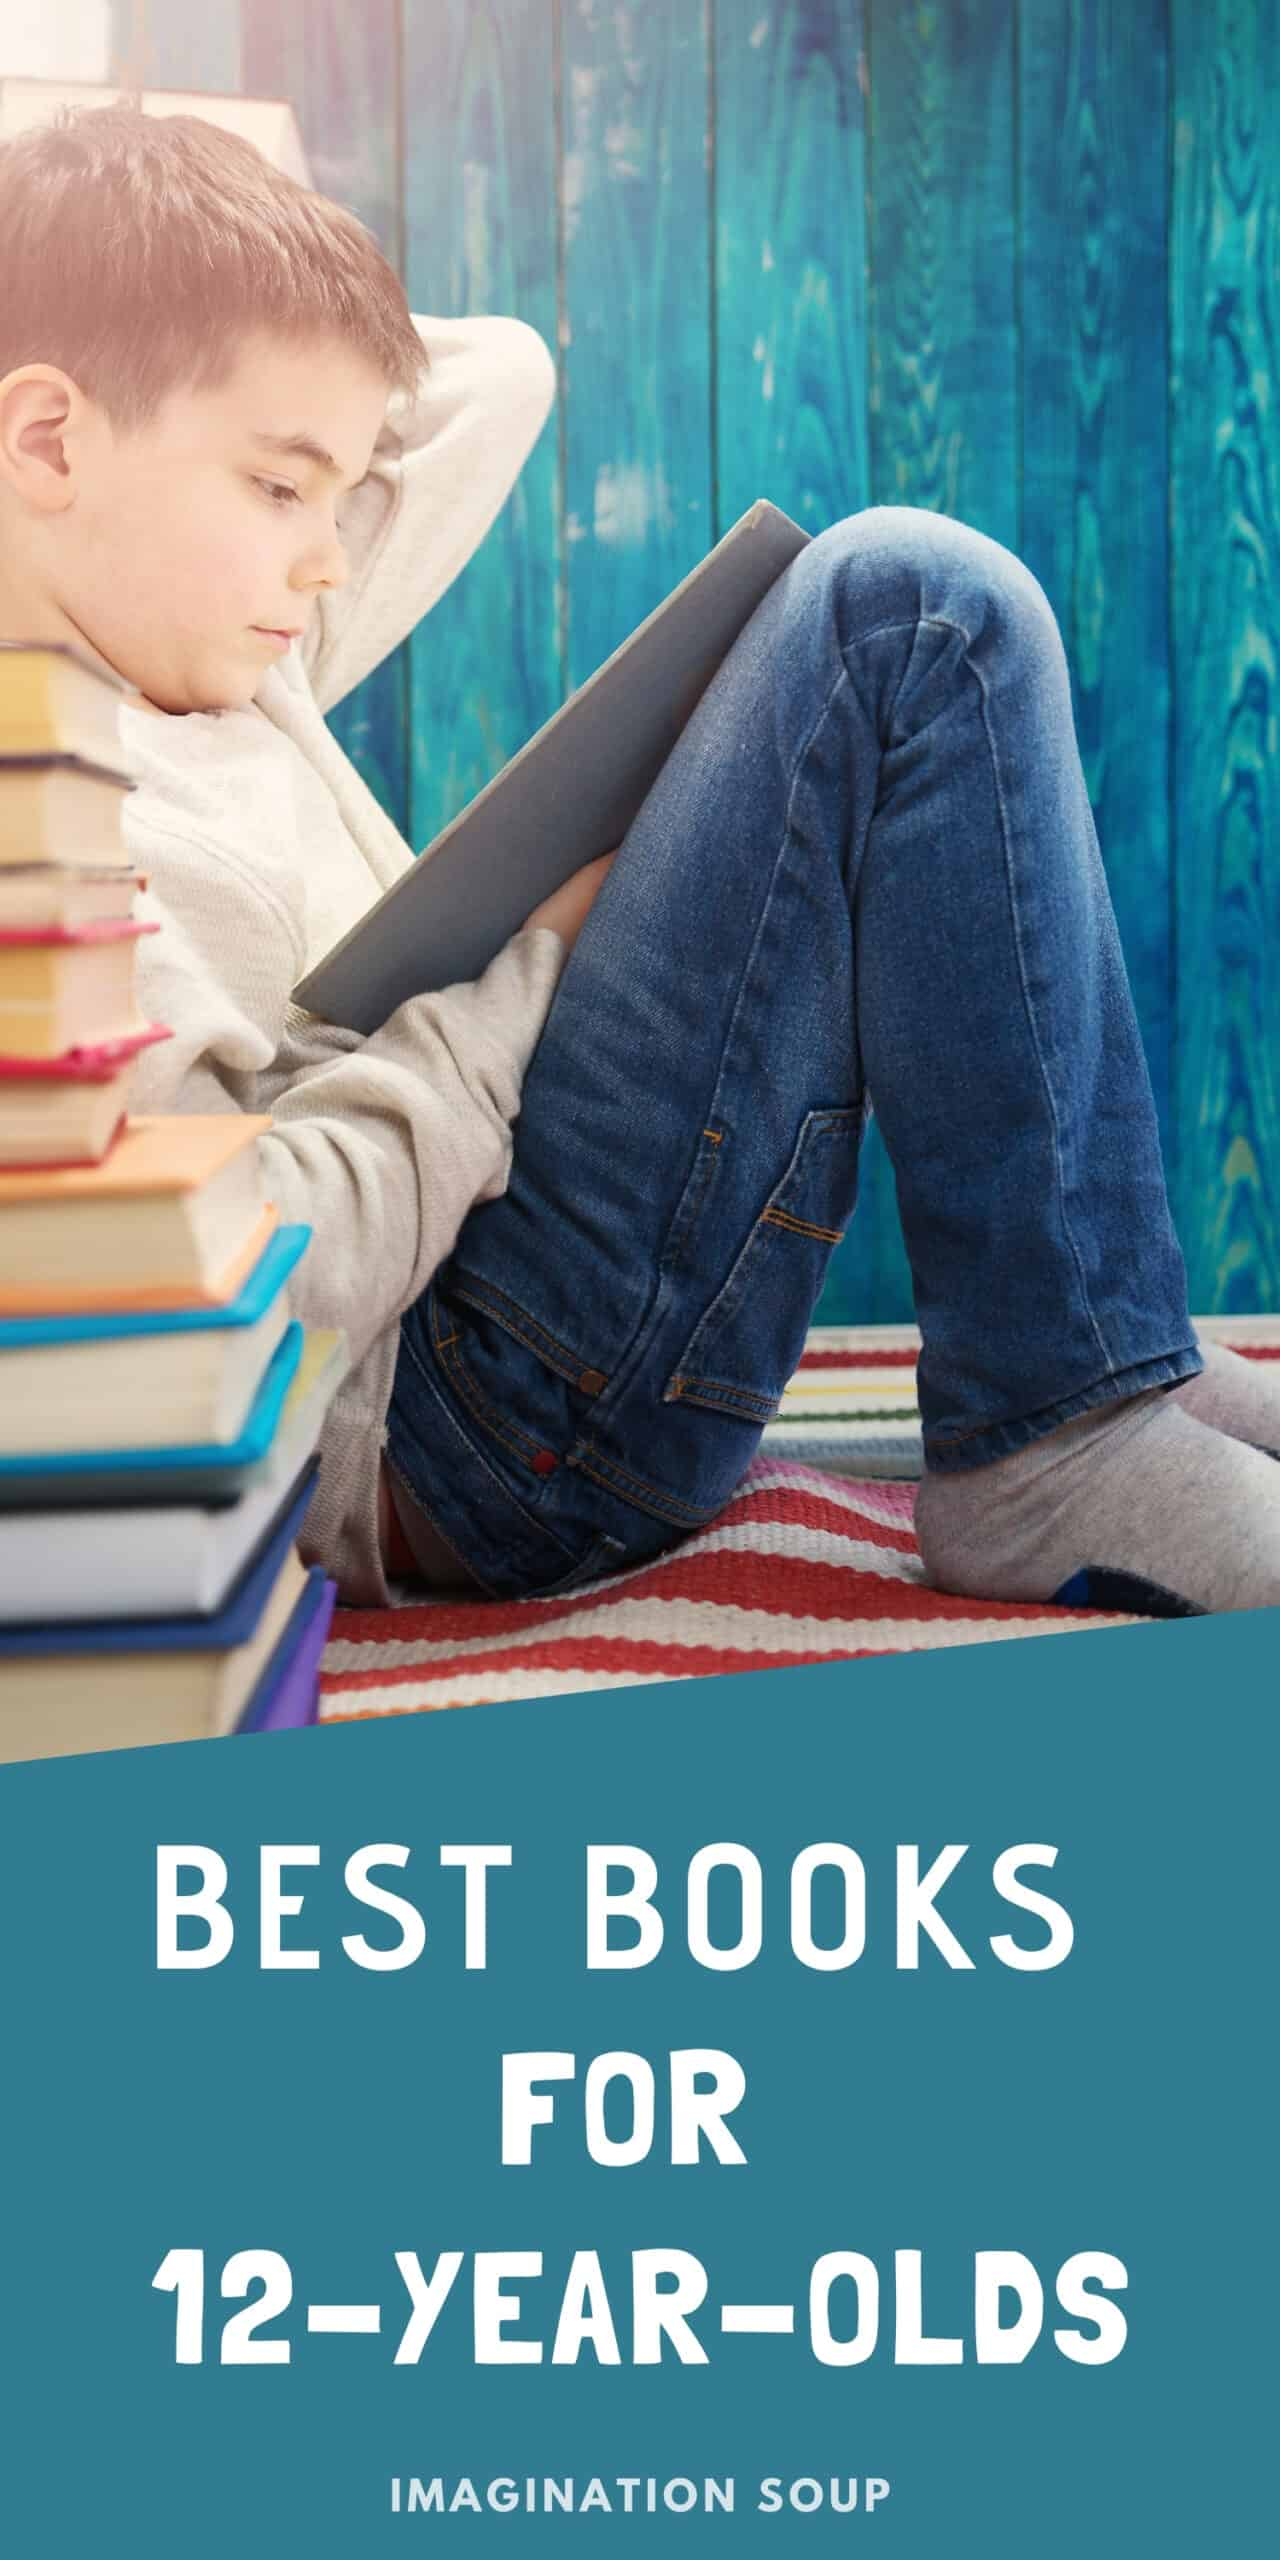 the best books for 12-year-olds